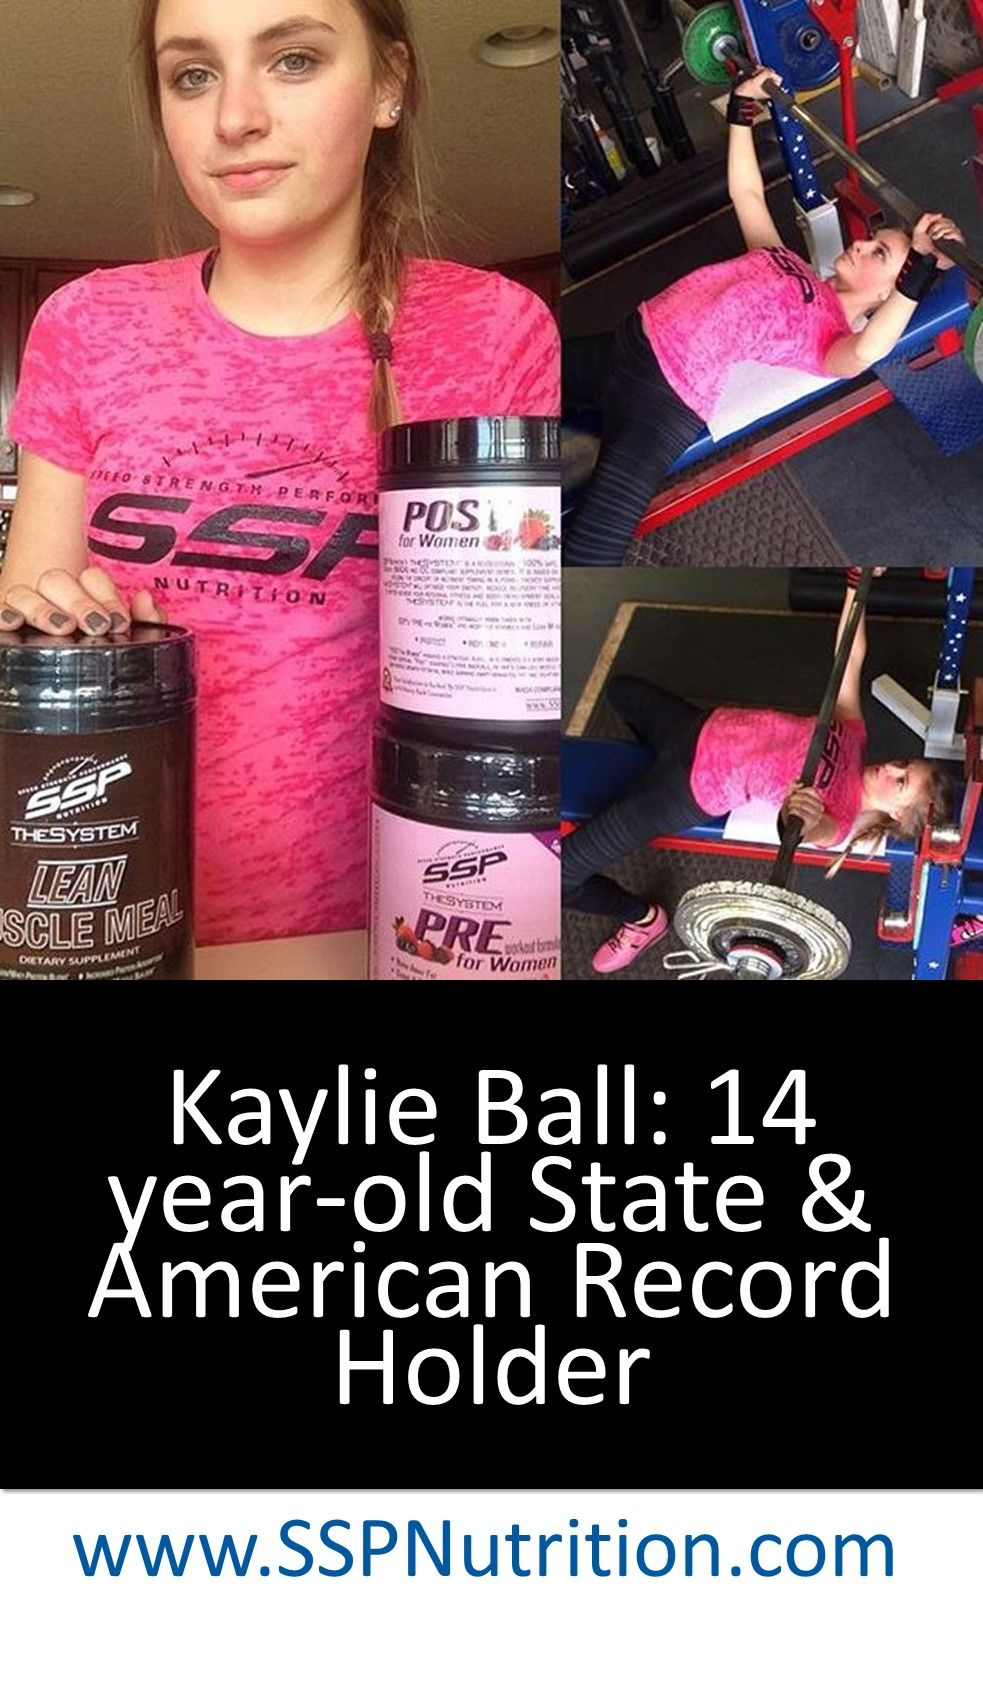 WOW! Kaylie Ball has been competing since 11 years old